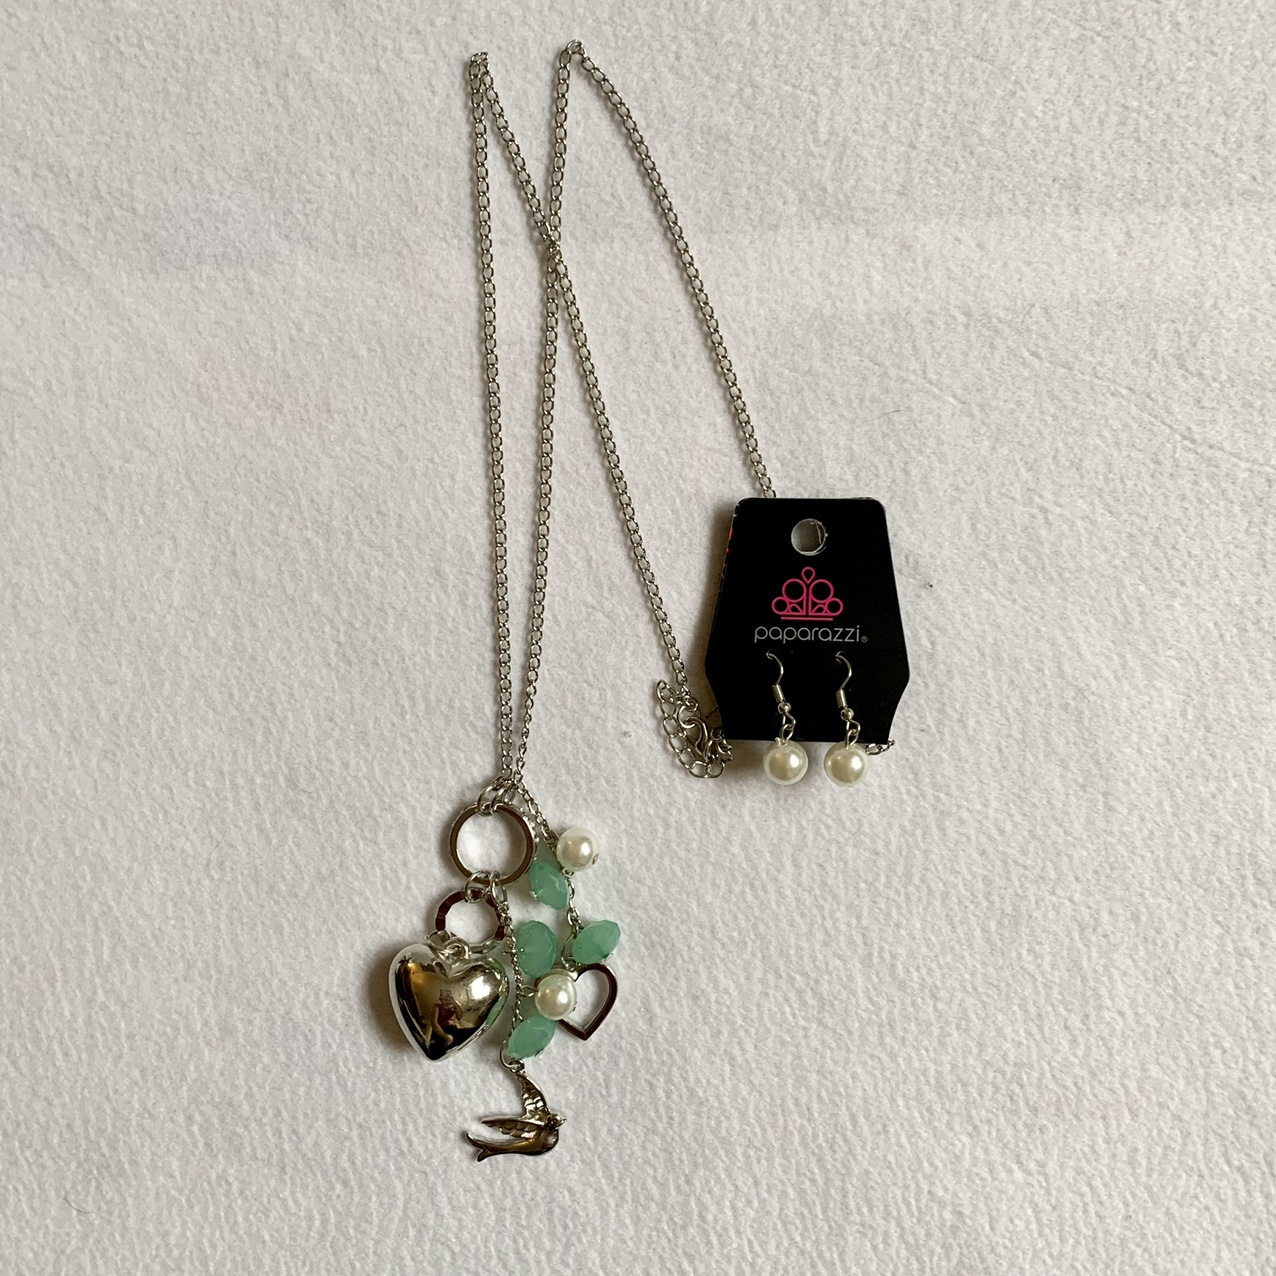 Product Image 1 - Brand new necklace and keychain